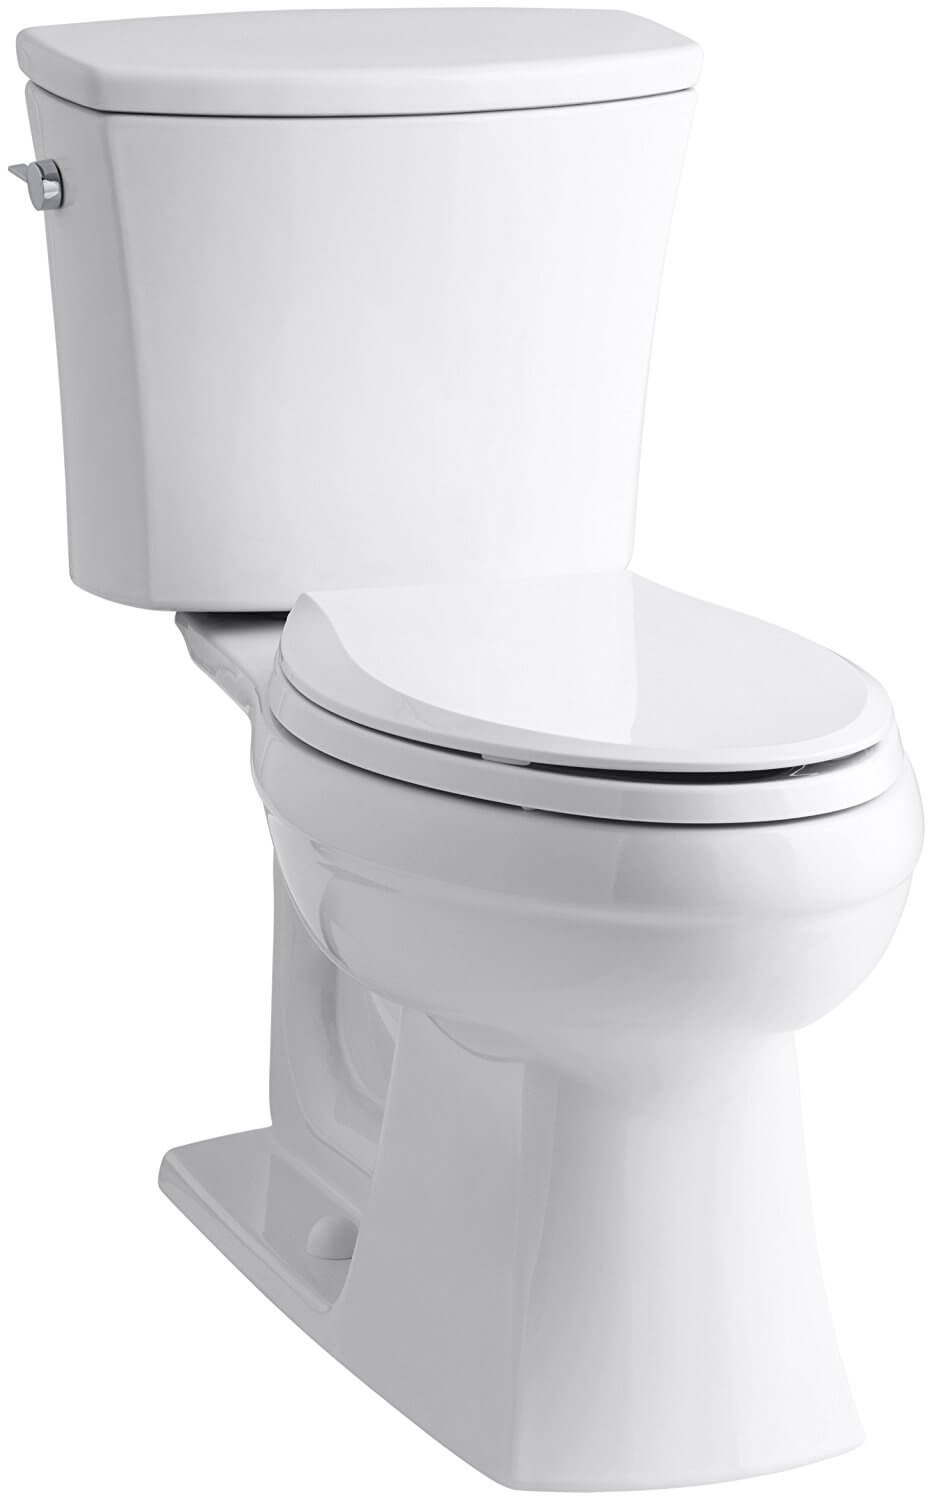 KOHLER K-3755-0 Kelston Comfort Height Two-Piece Toilet with 1.28 GPF and Elongated Bowl, White